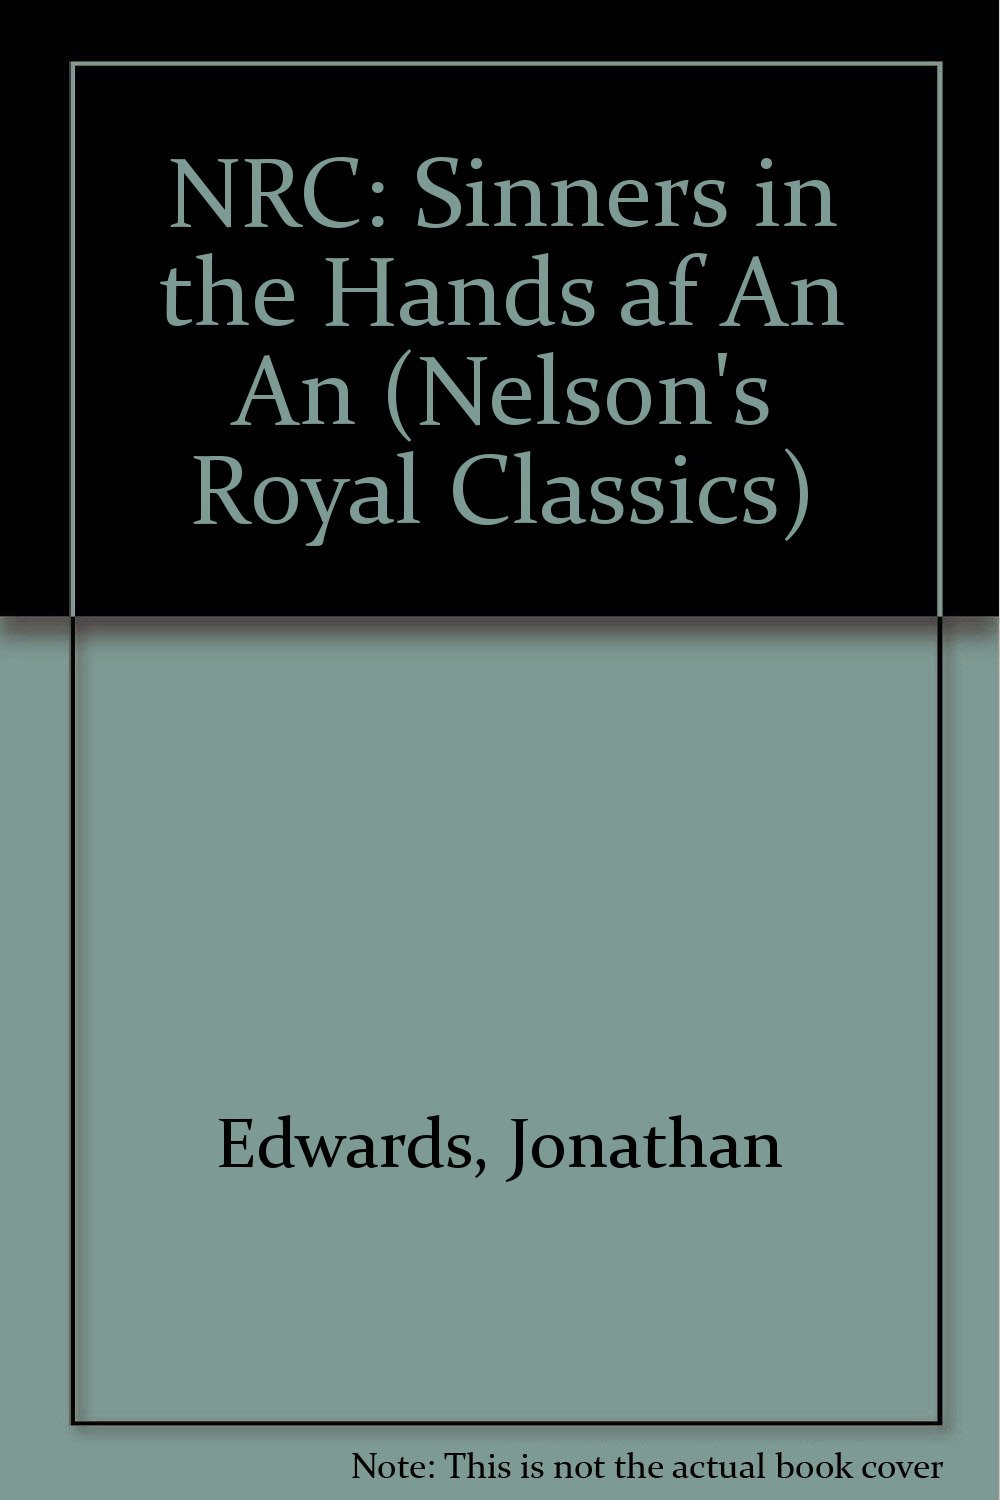 Download Sinners In The Hands Of An Angry God And Other Writings Nelson's Royal Classics PDF